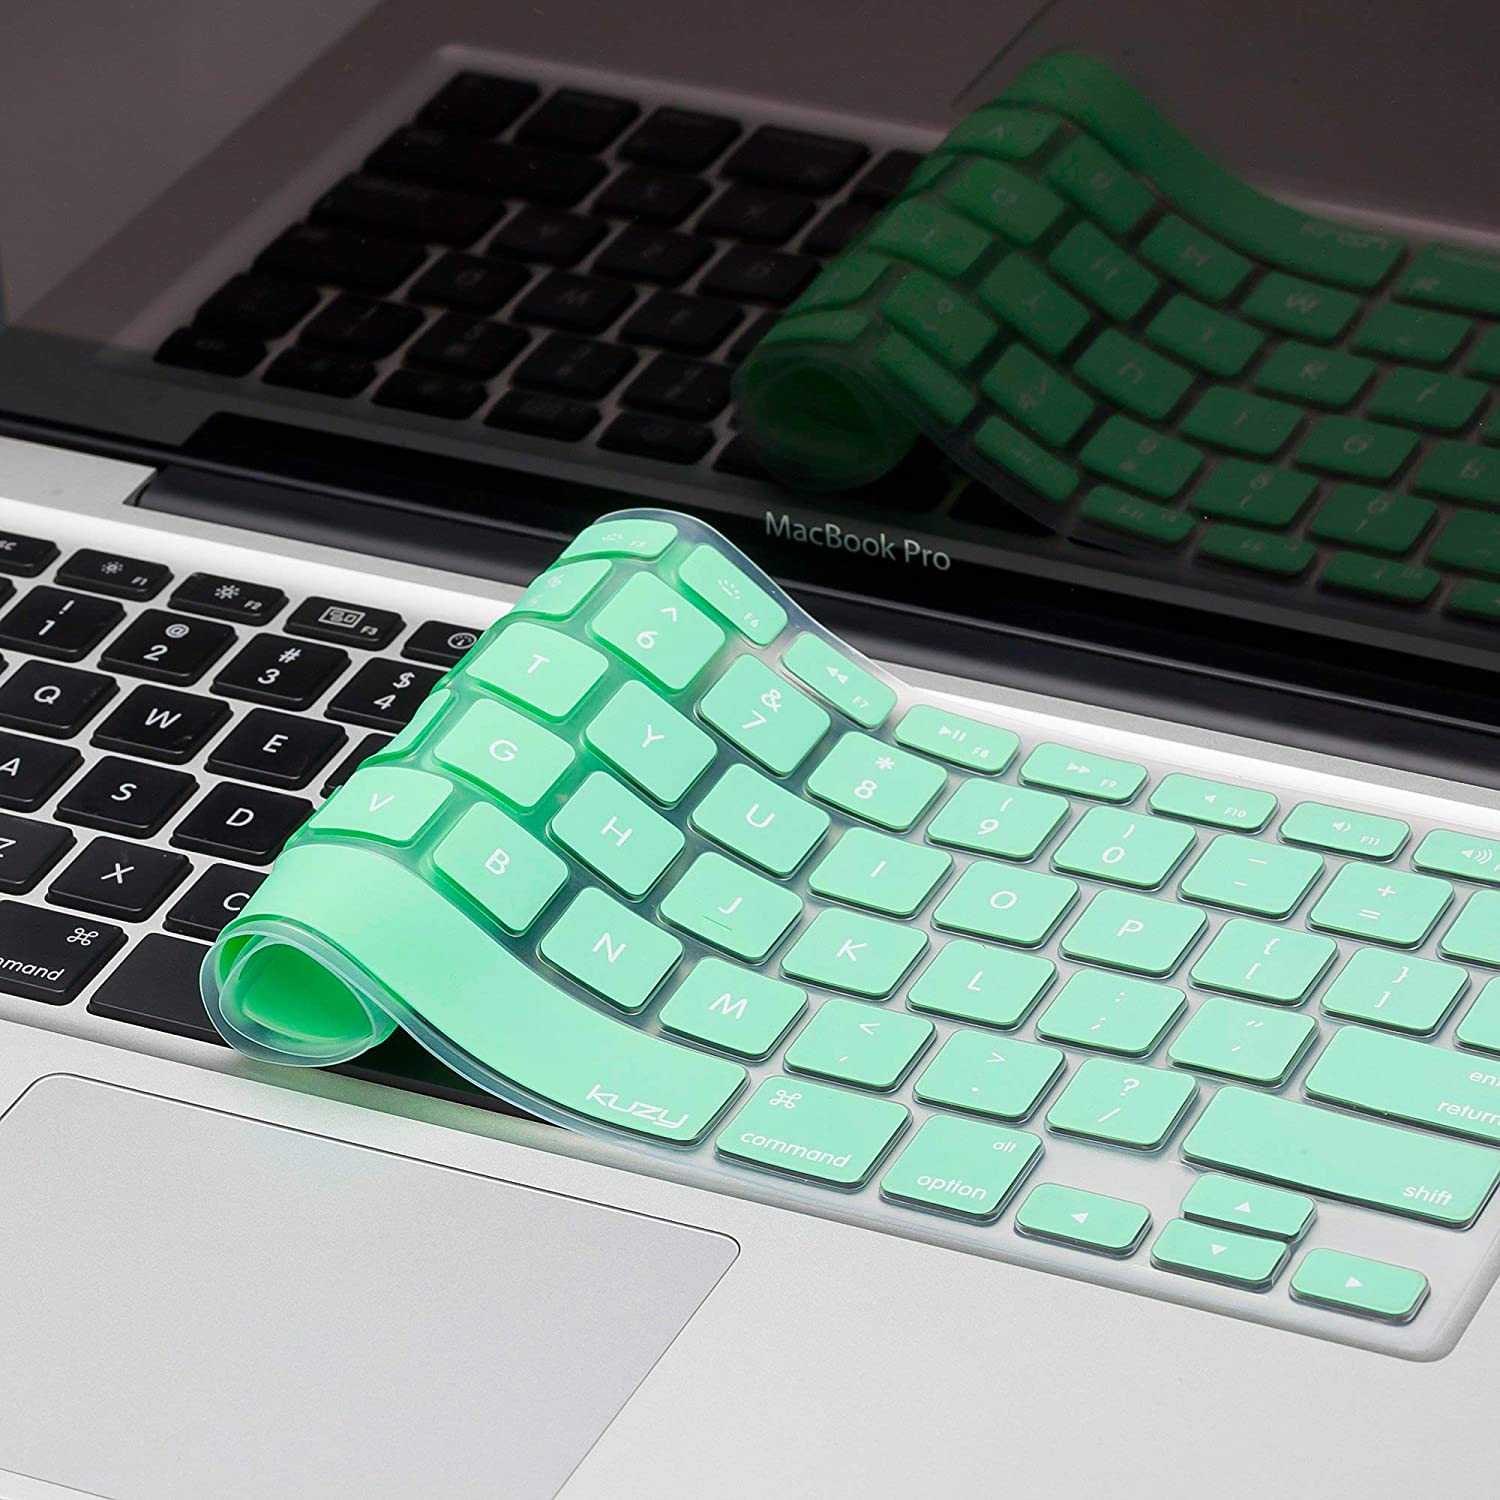 Kuzy - MacBook Keyboard Cover for Older Version MacBook Pro 13, 15, 17 inch and MacBook Air 13 inch, iMac Wireless Keyboard, Apple Computer Accessories Key Board Silicone Skin Protector - Mint Green